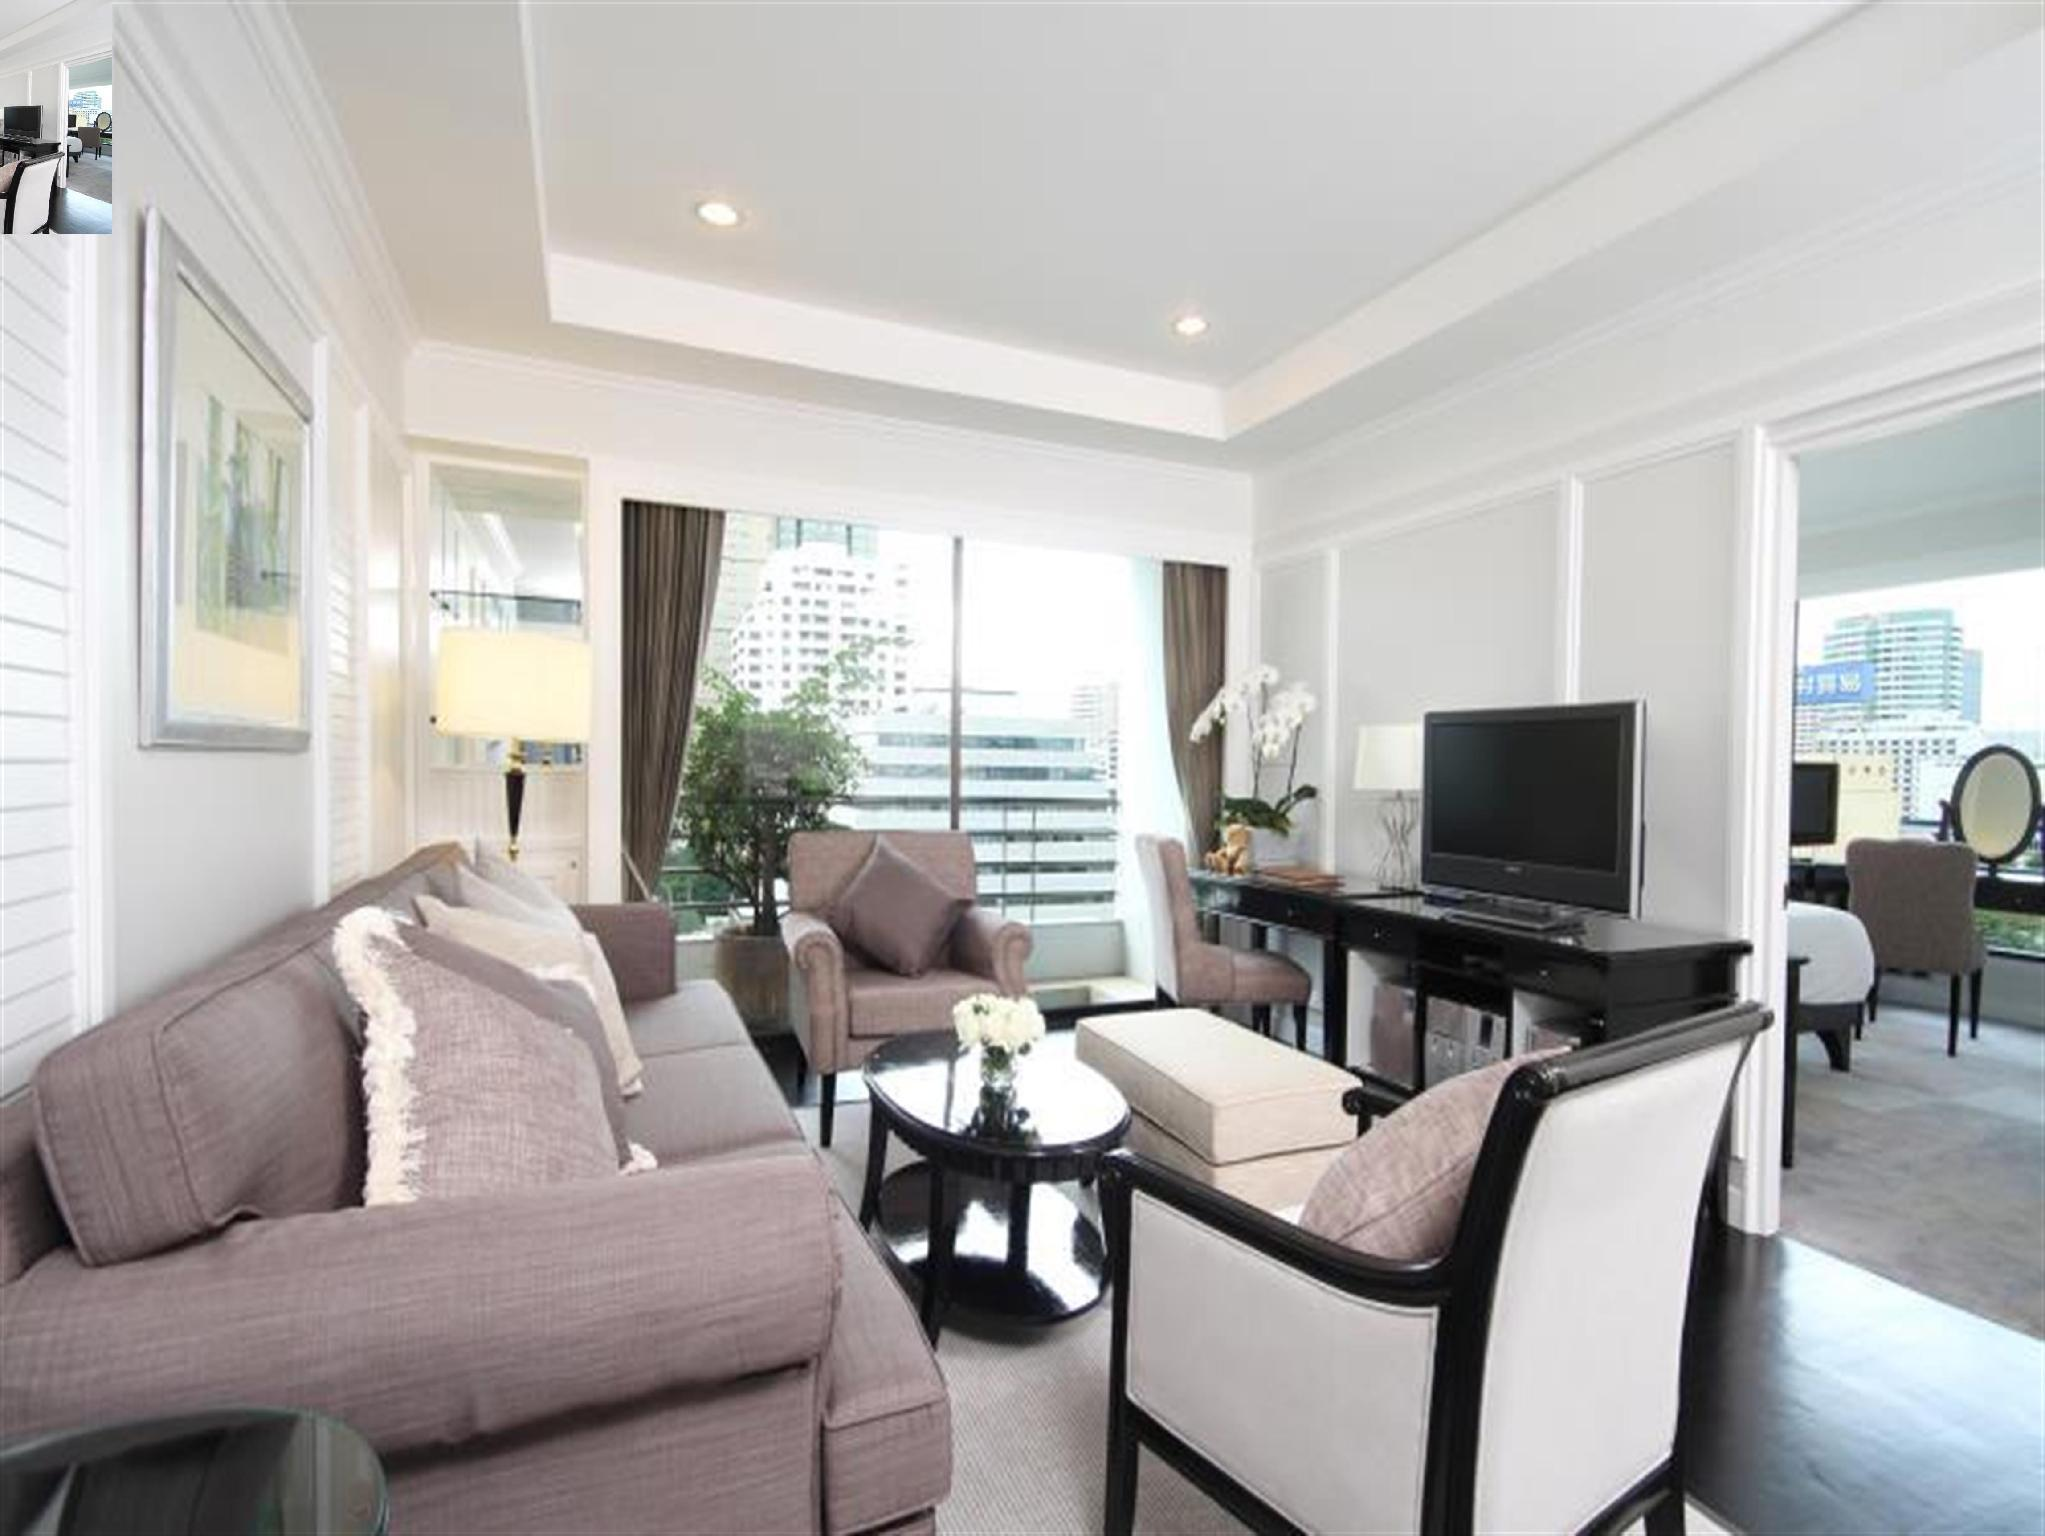 Best Price on Cape House Serviced Apartment in Bangkok Reviews